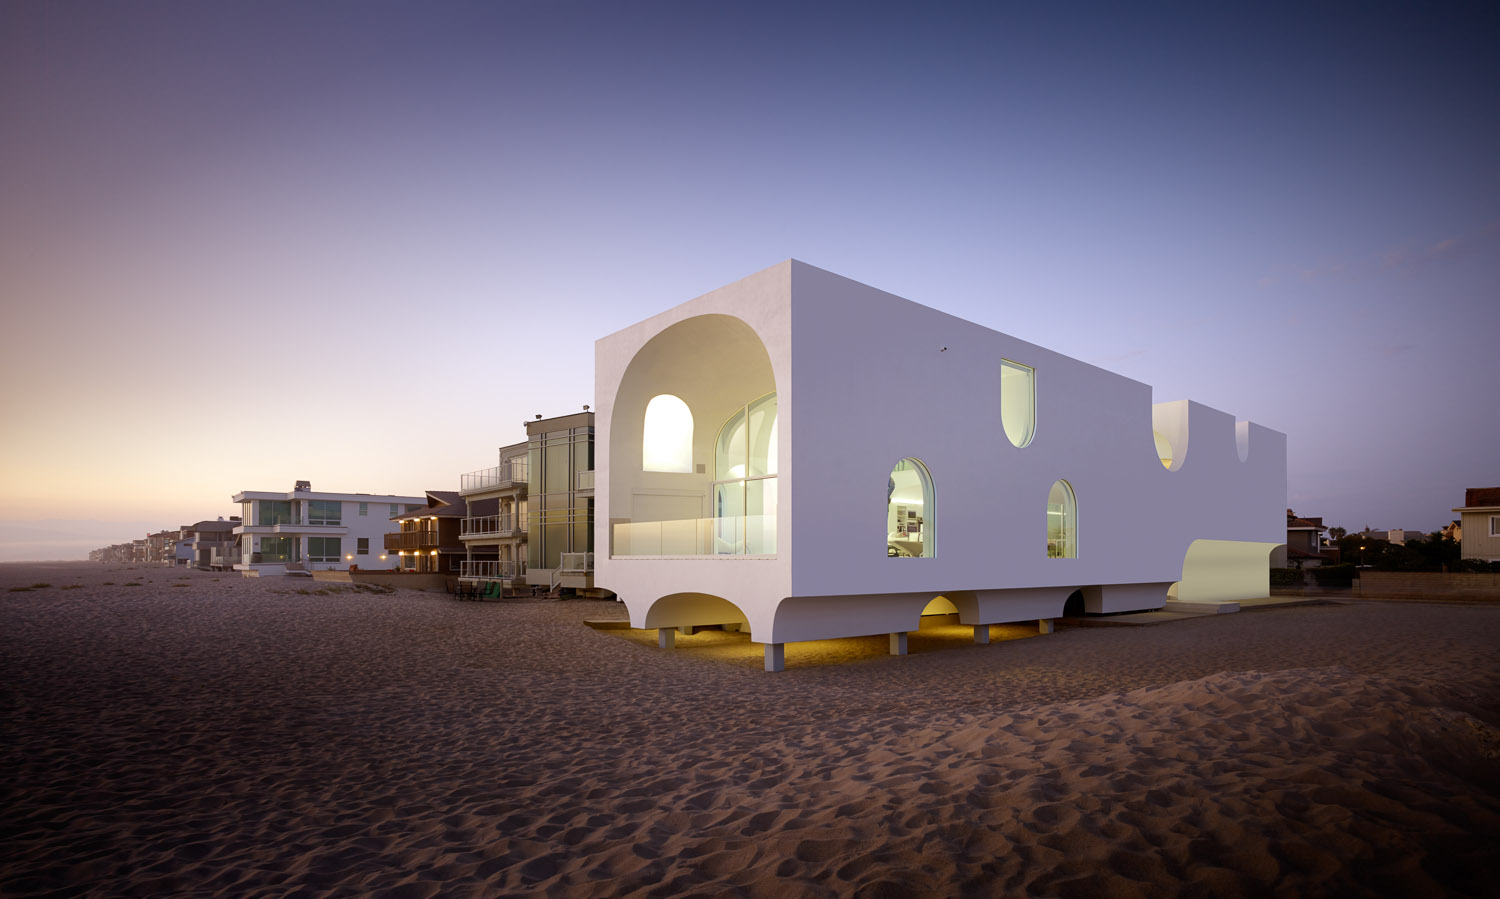 A Johnston Marklee-designed beach house with vault-shaped cutouts